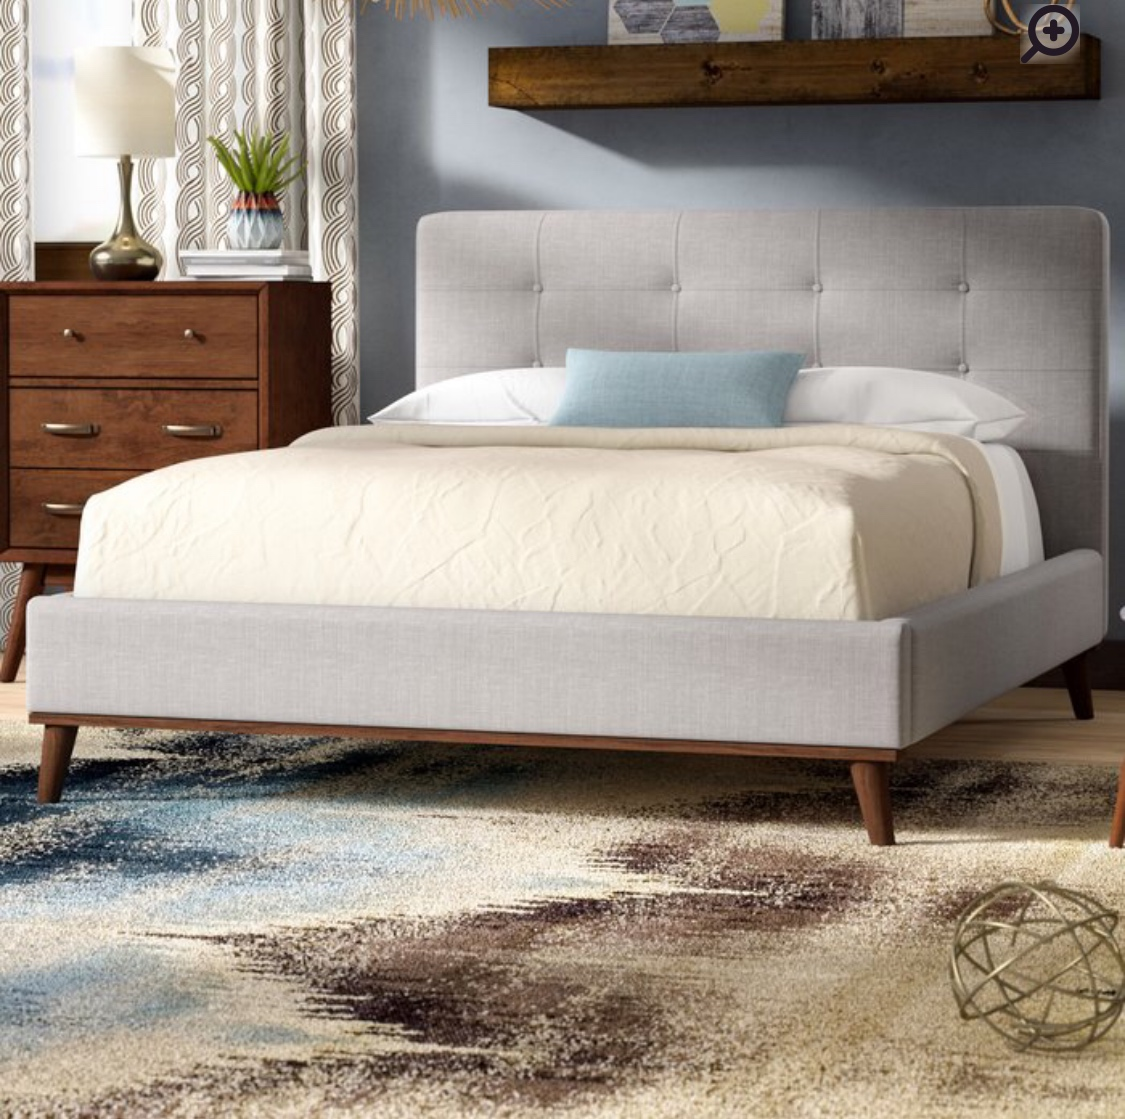 Jeterson Upholstered Platform Bed from Wayfair  in a king